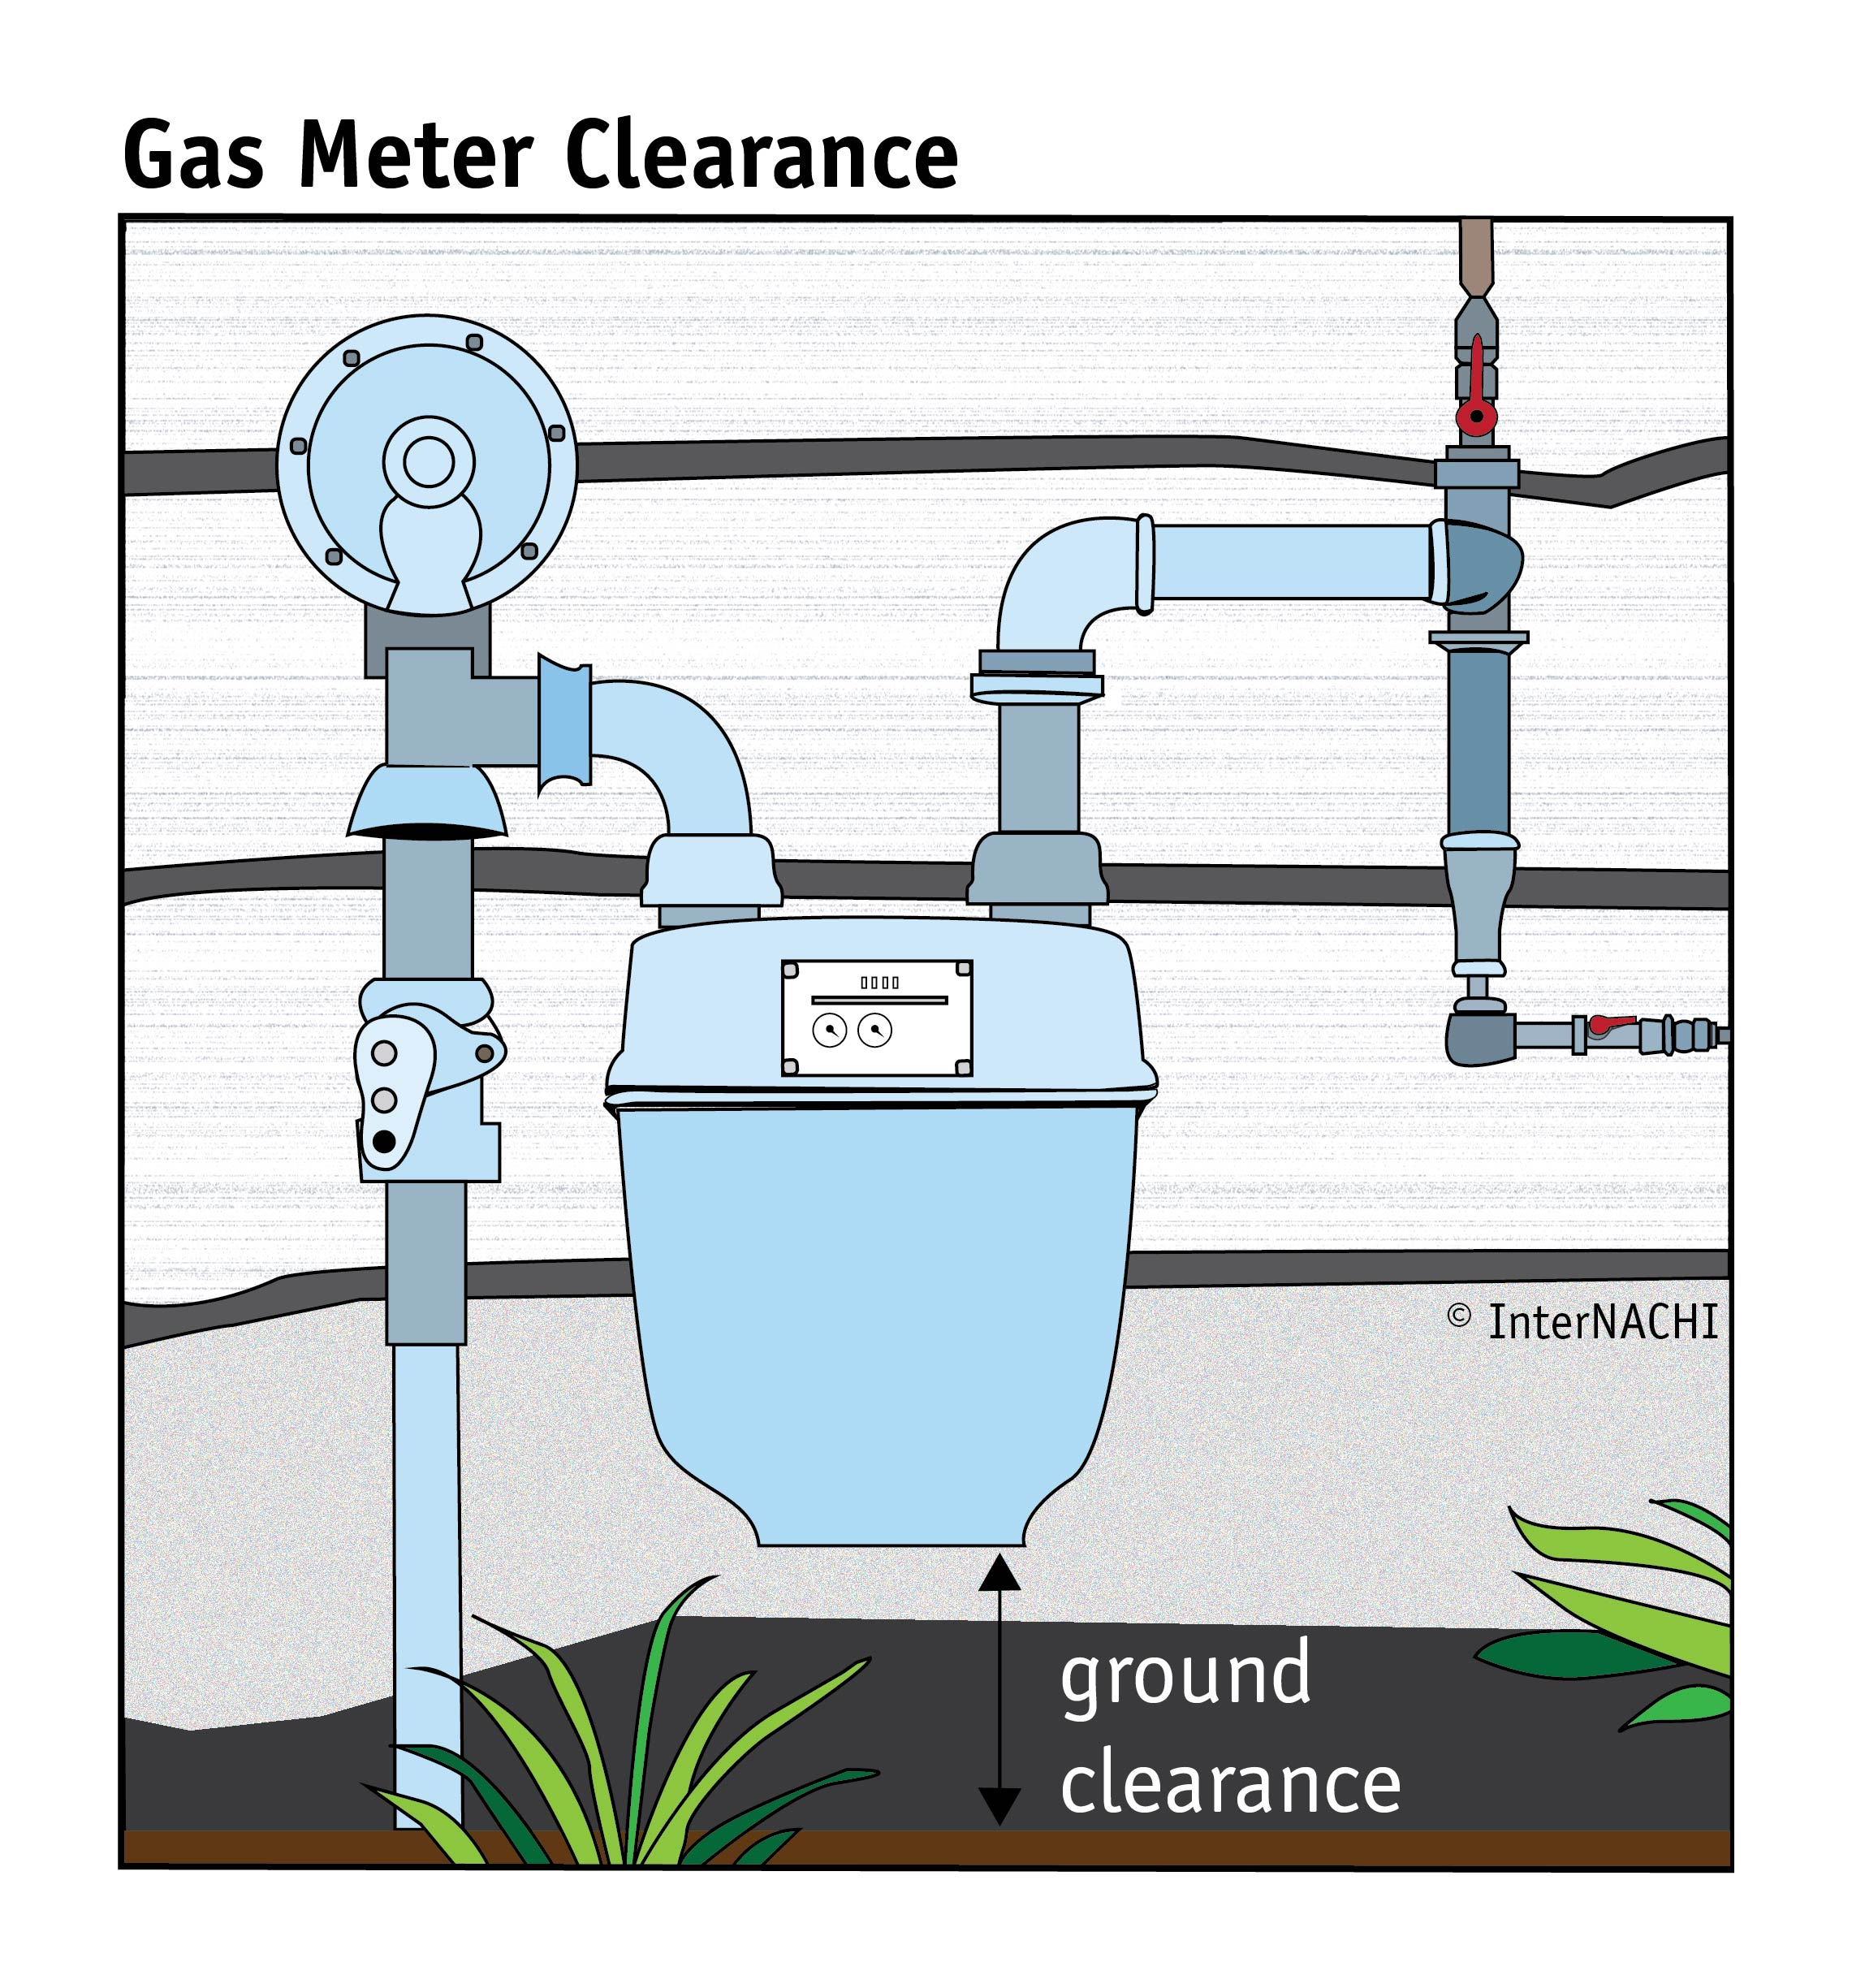 Gas meter clearance.